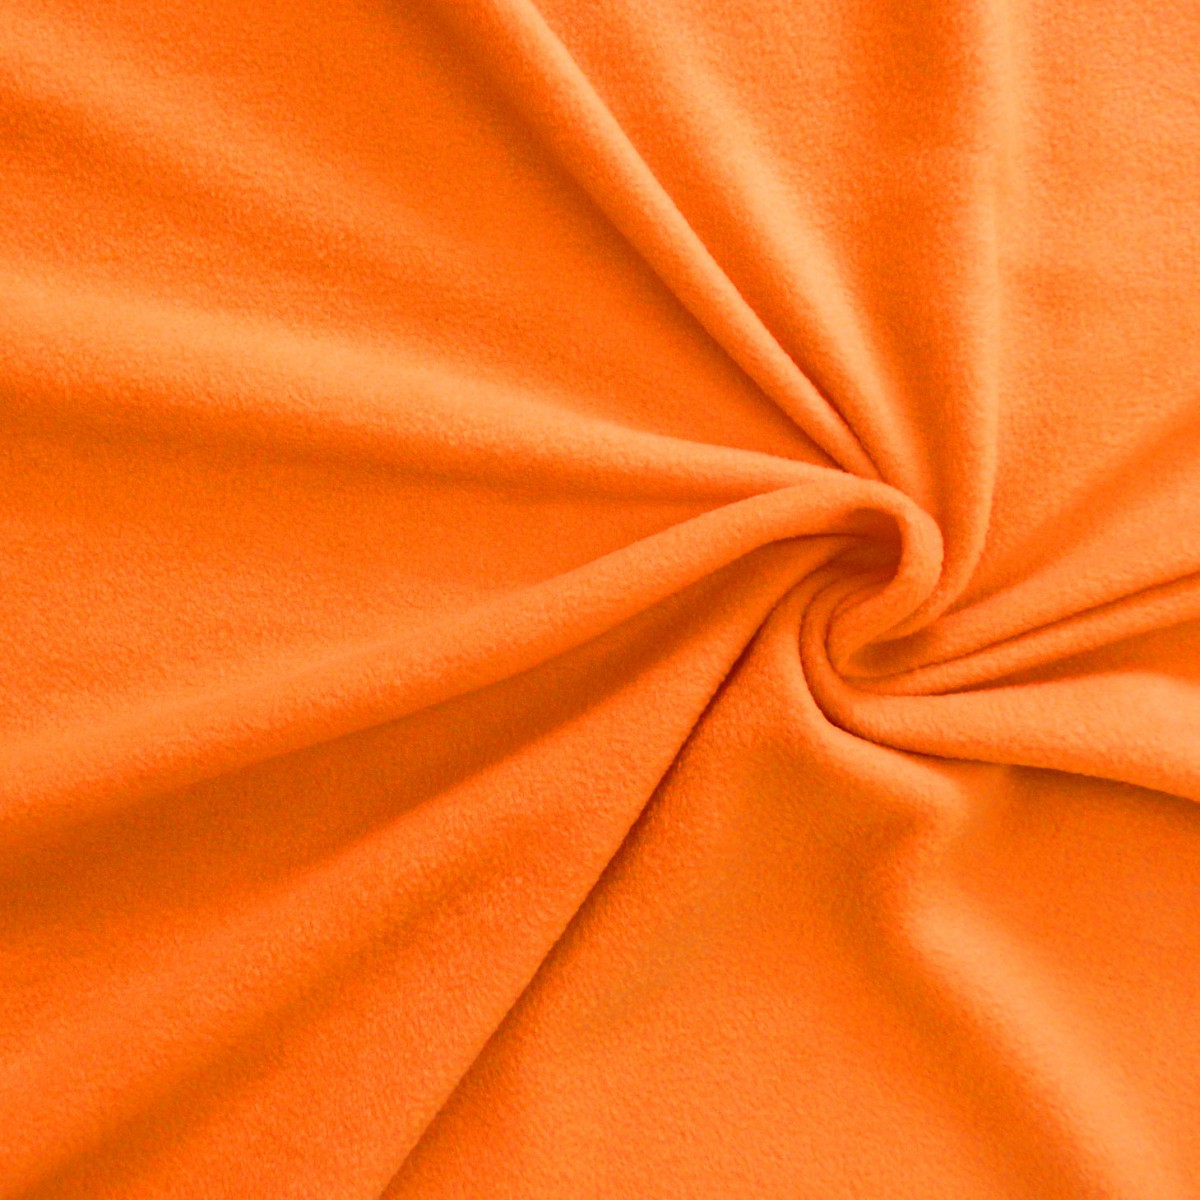 polar fleece stoffe fleecestoff orange stoffe stoffe uni fleece. Black Bedroom Furniture Sets. Home Design Ideas